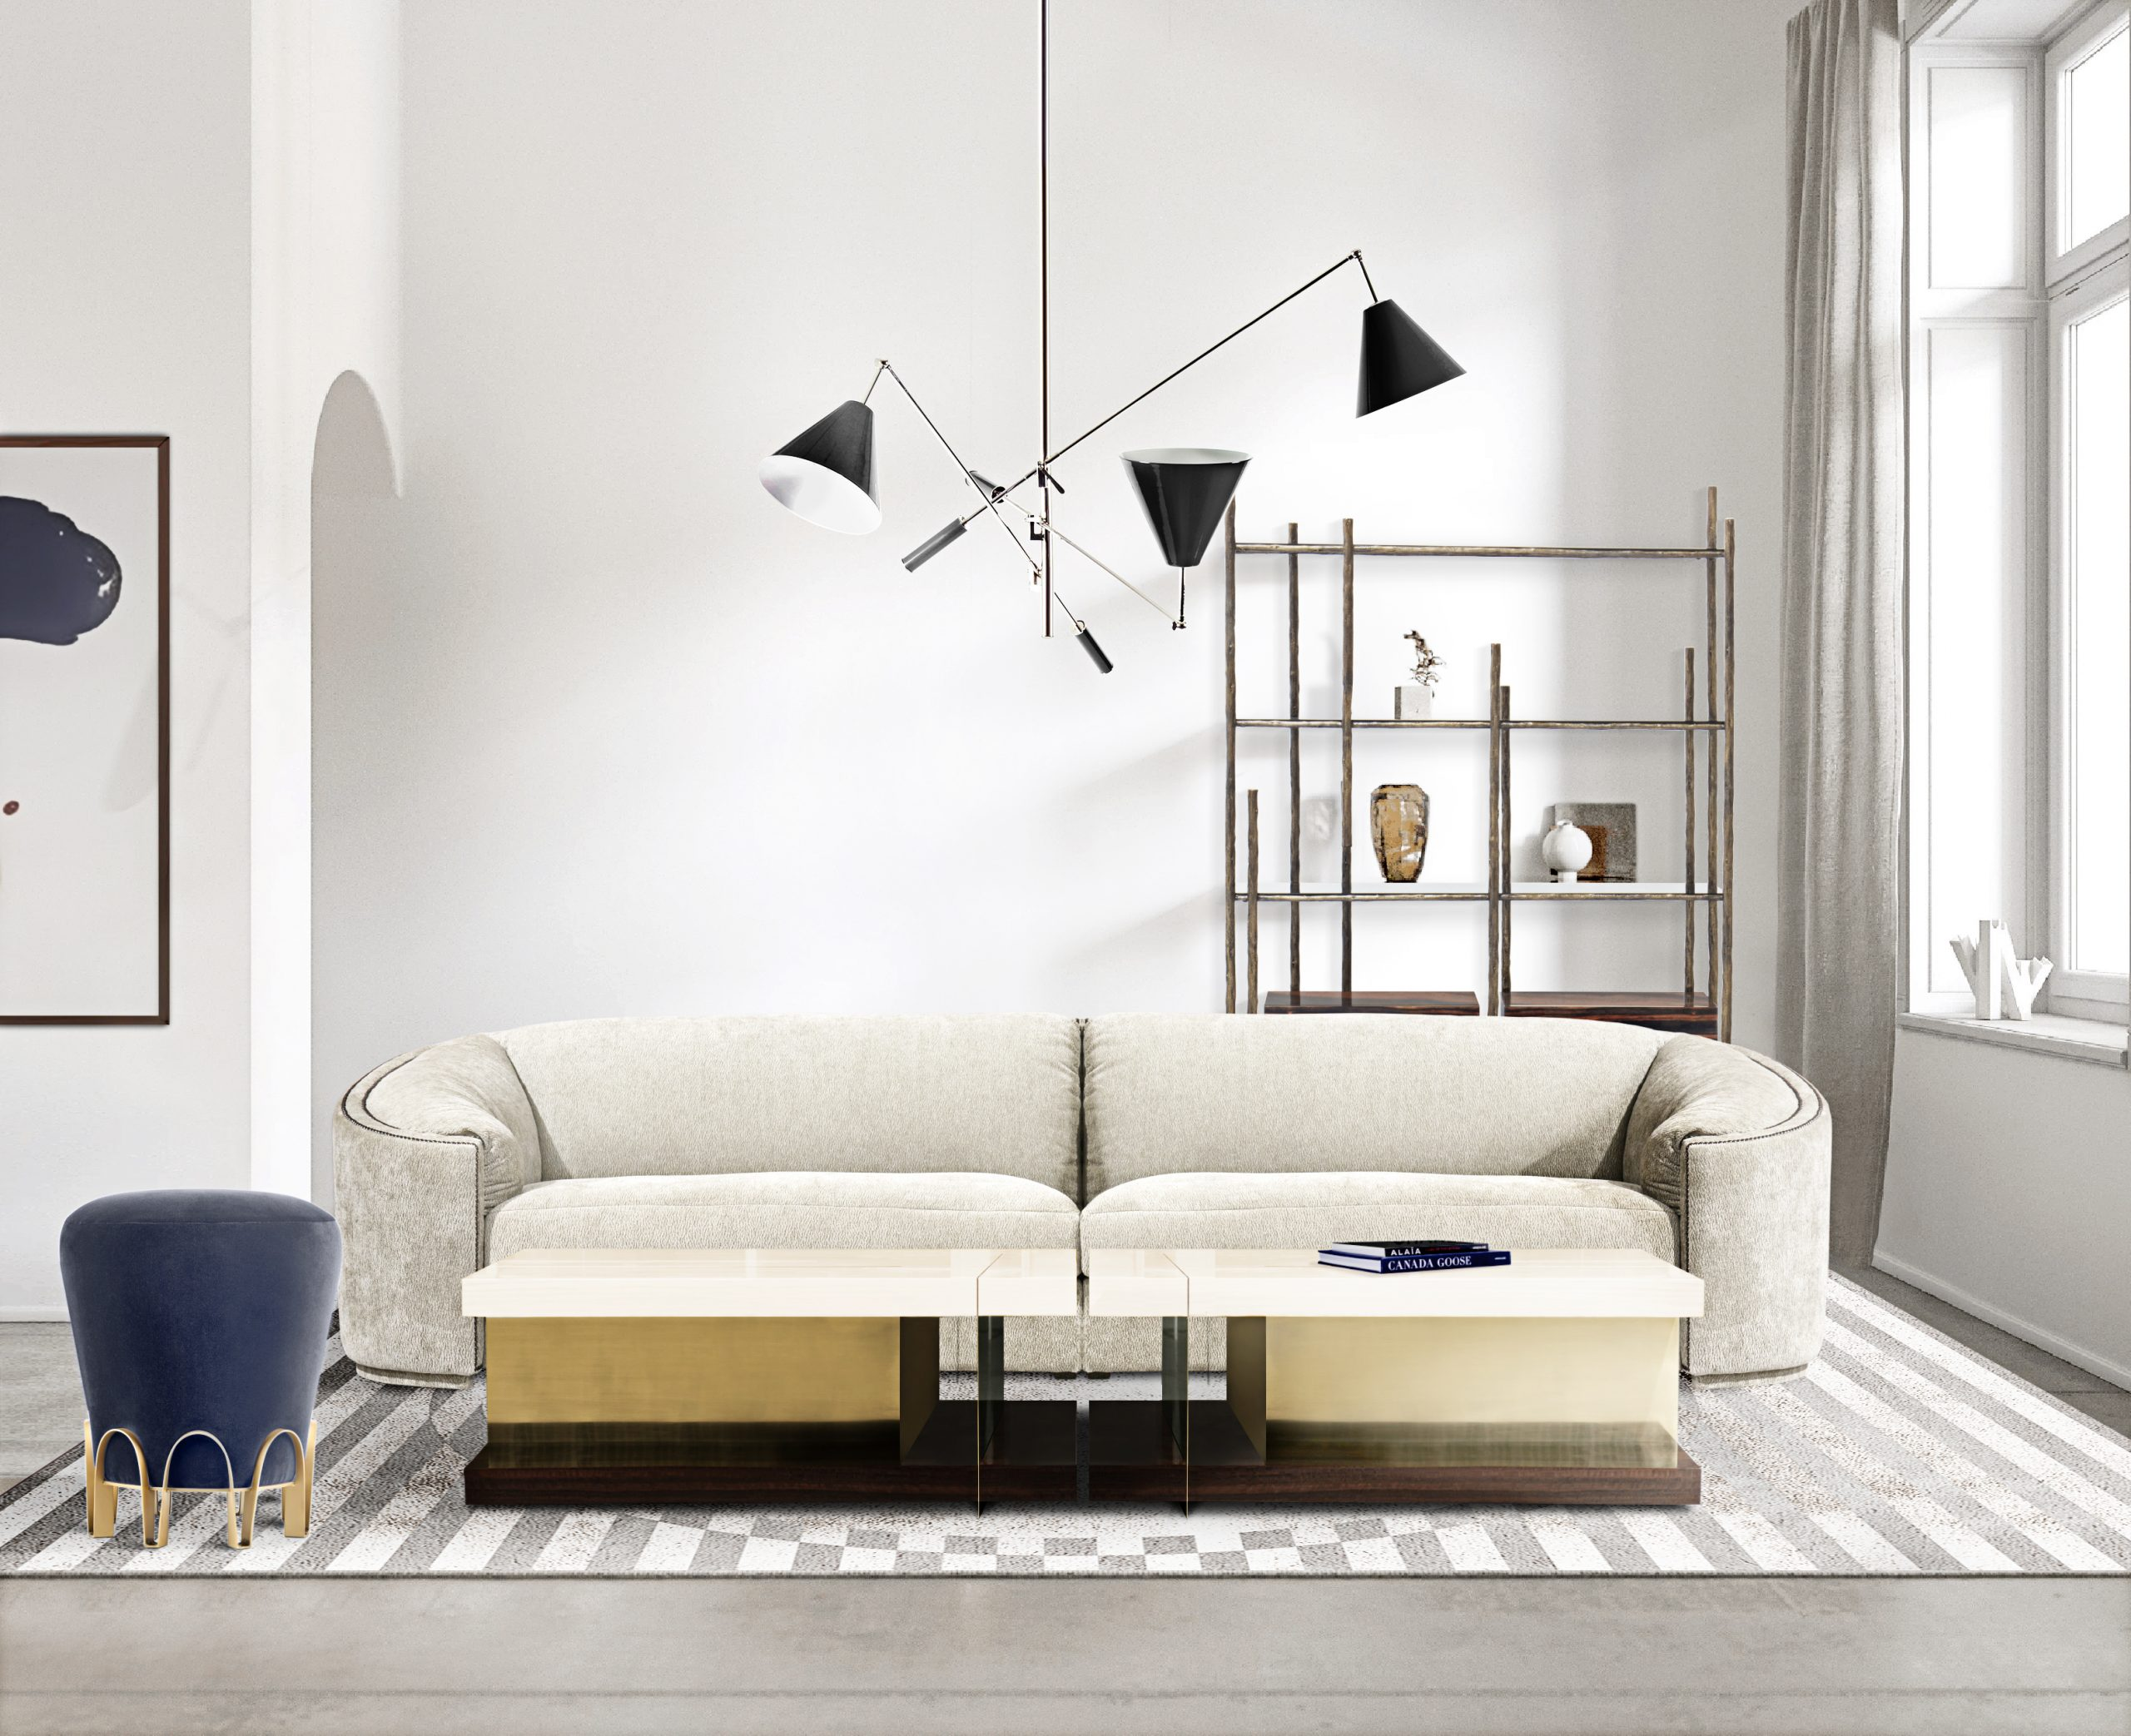 Modern Living Room Sofa Ideas That Will Blow Your Mind living room sofa Modern Living Room Sofa Ideas That Will Blow Your Mind BB wallesII sofa lallan center scaled